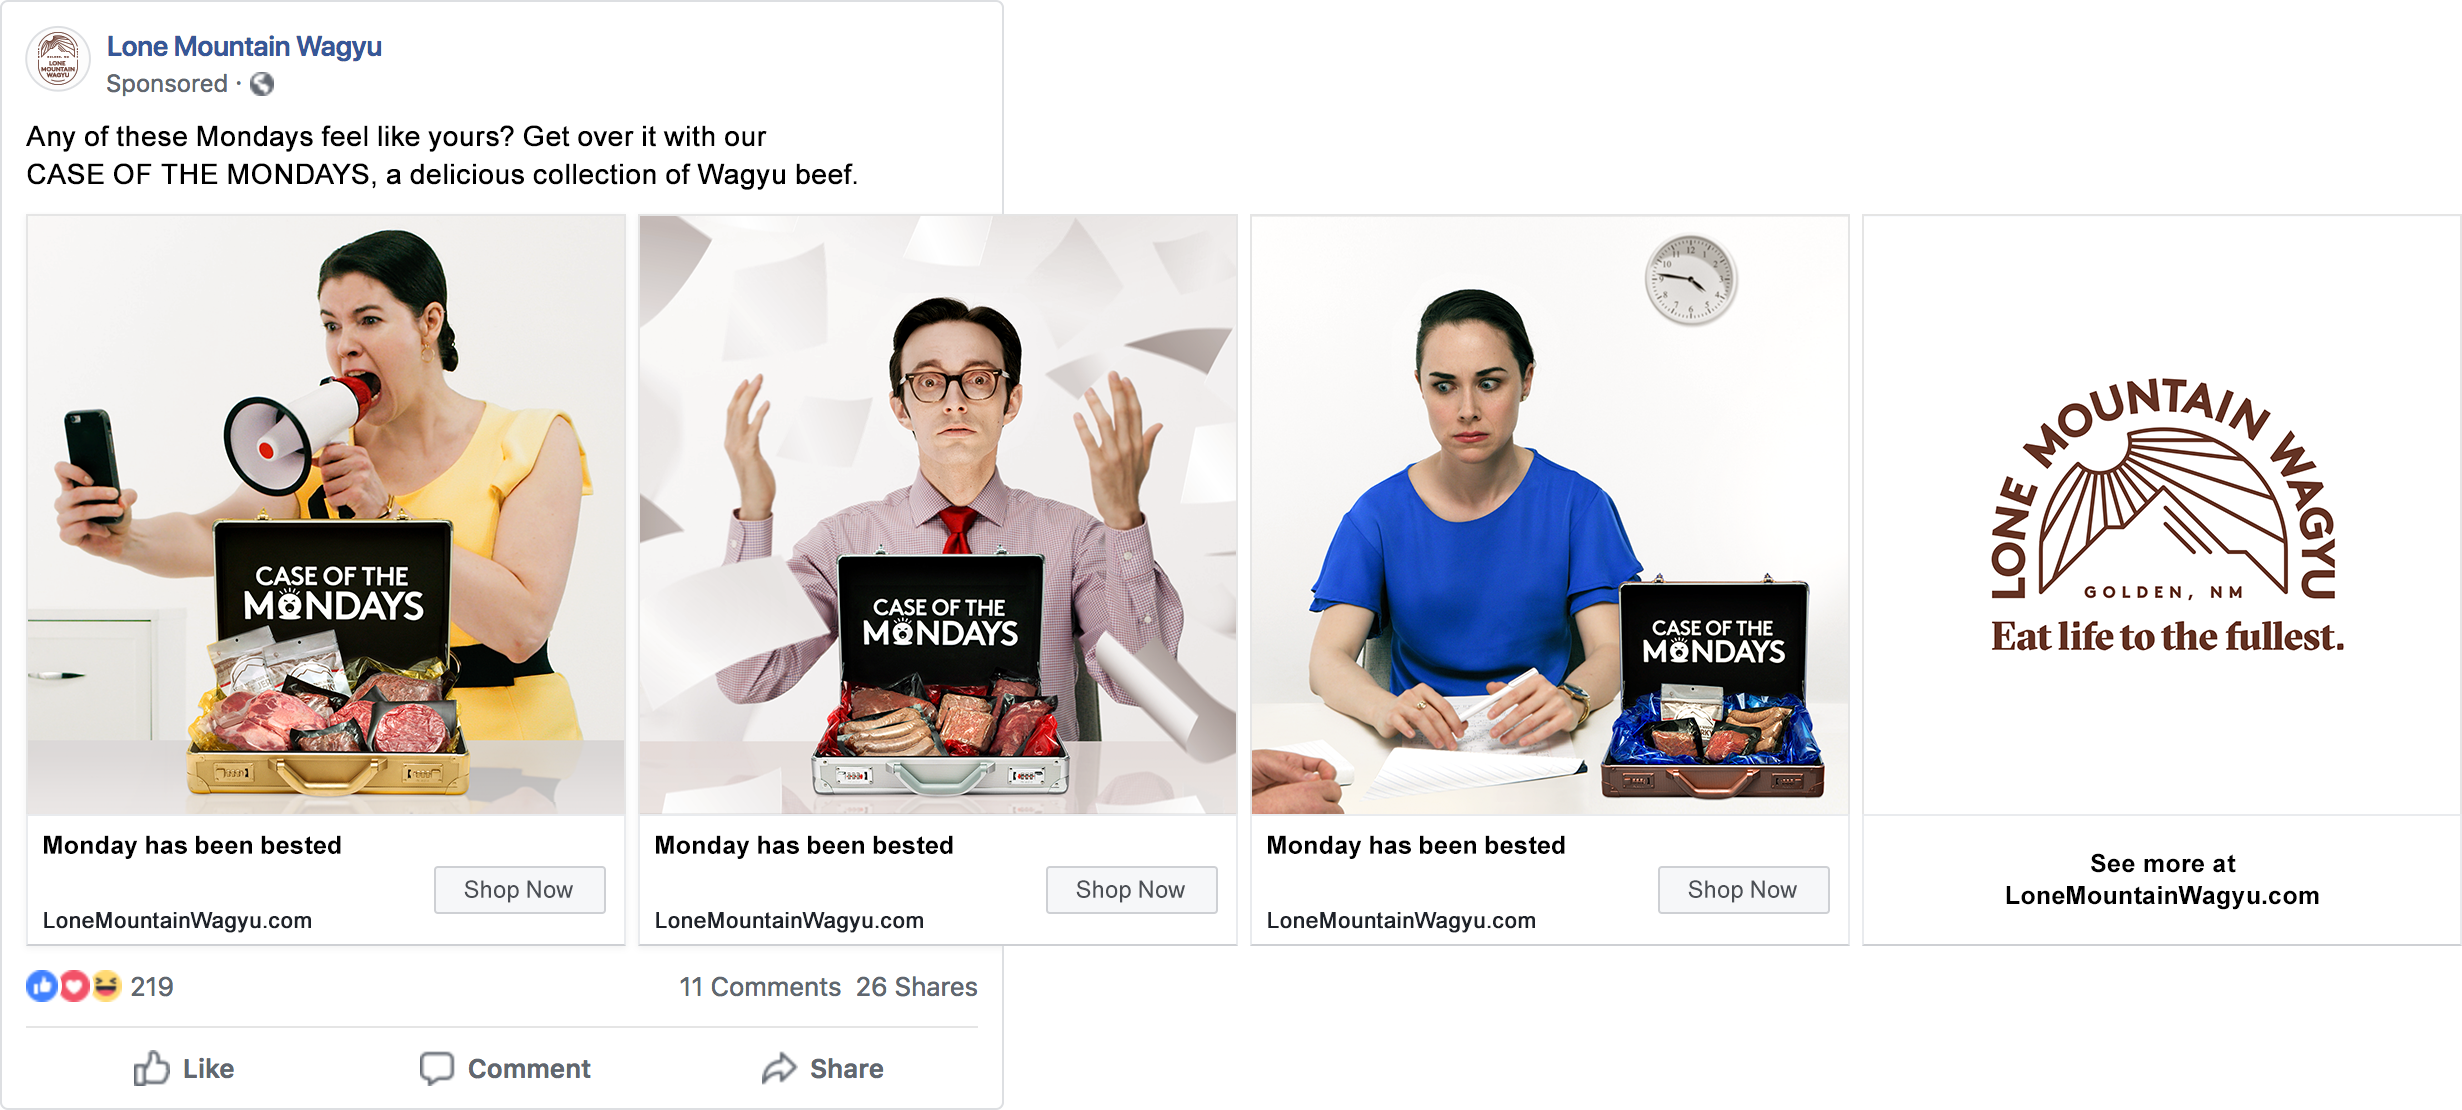 Case of the Mondays ad campaign social media ad for Lone Mountain Wagyu by Tom Morhous and Remo+Oob, Ltd.